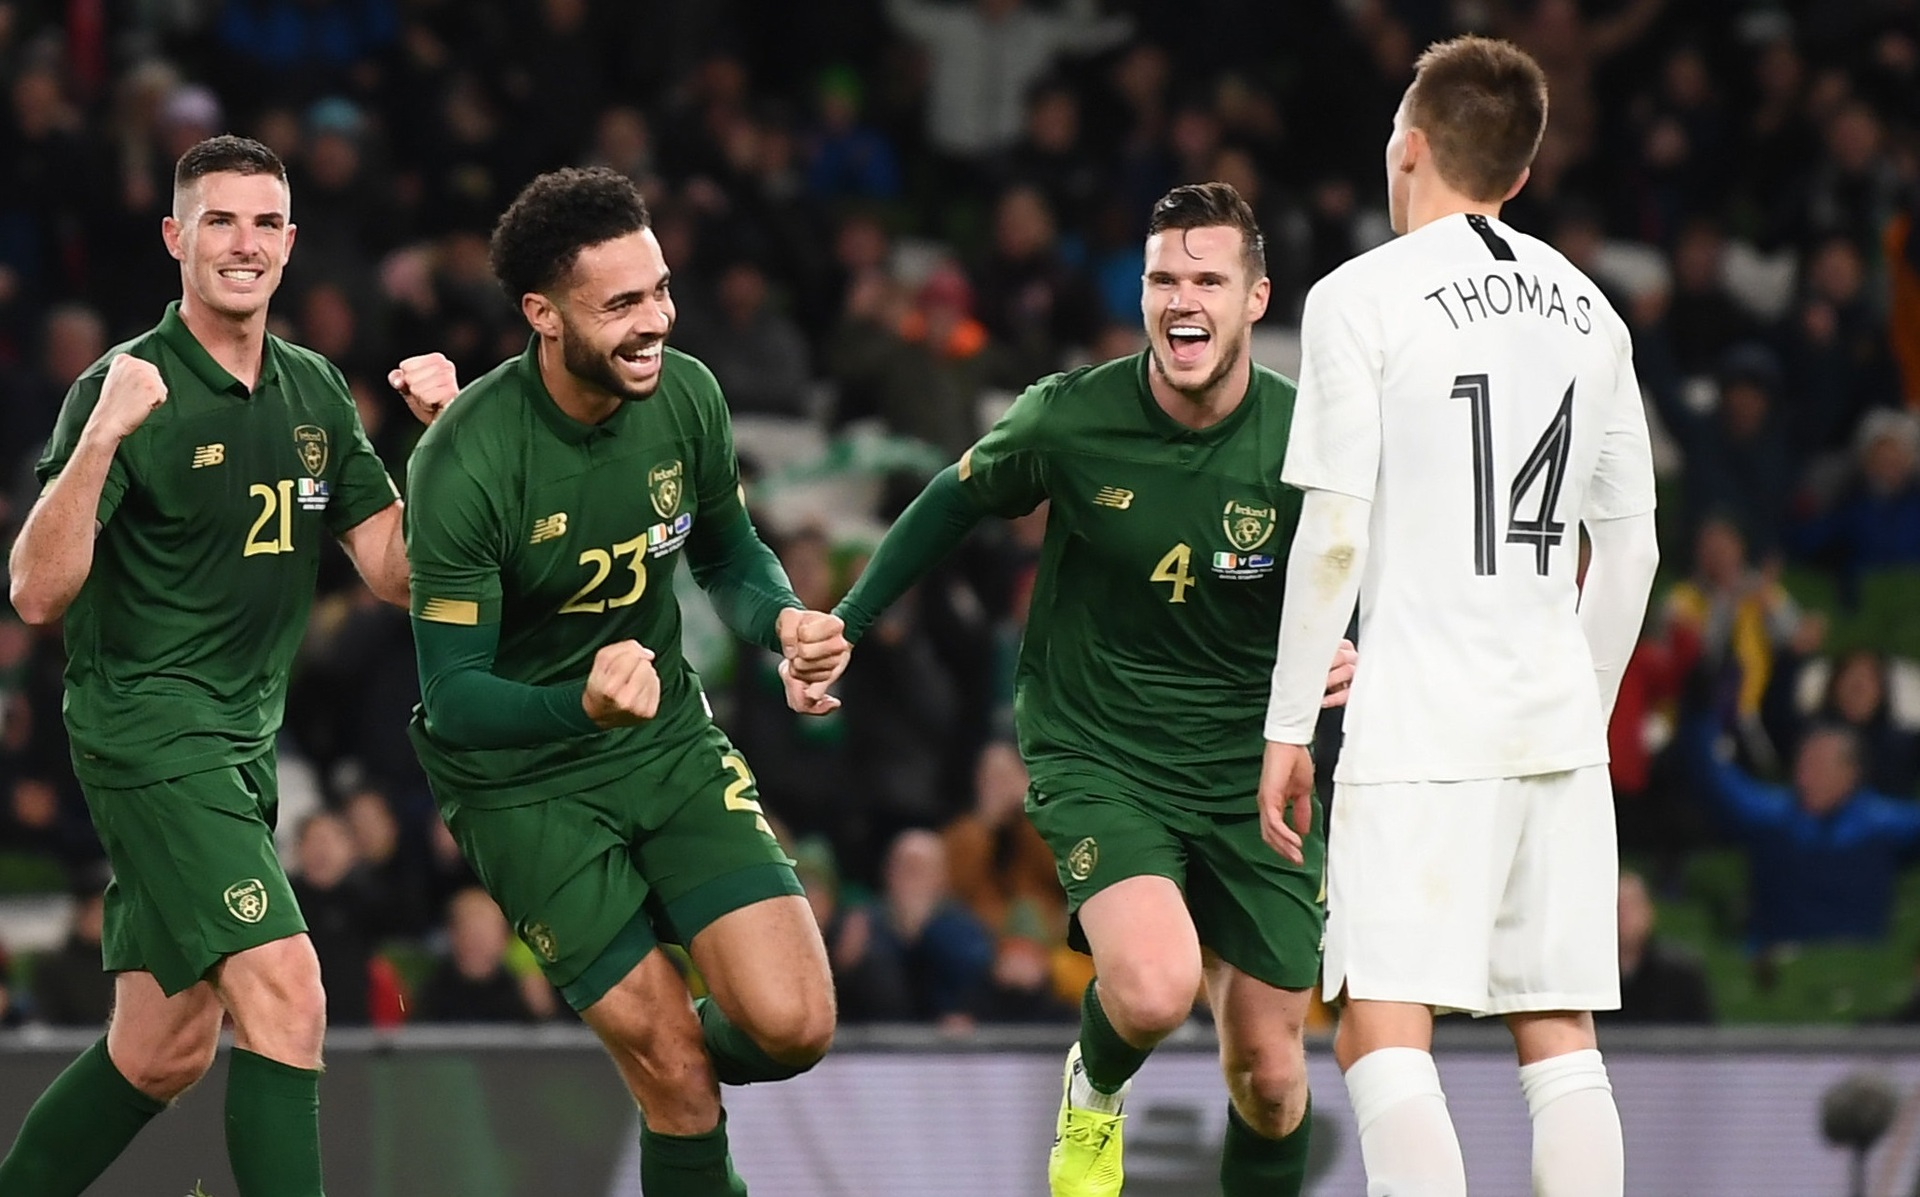 New All Whites era ends in defeat - but with some positives